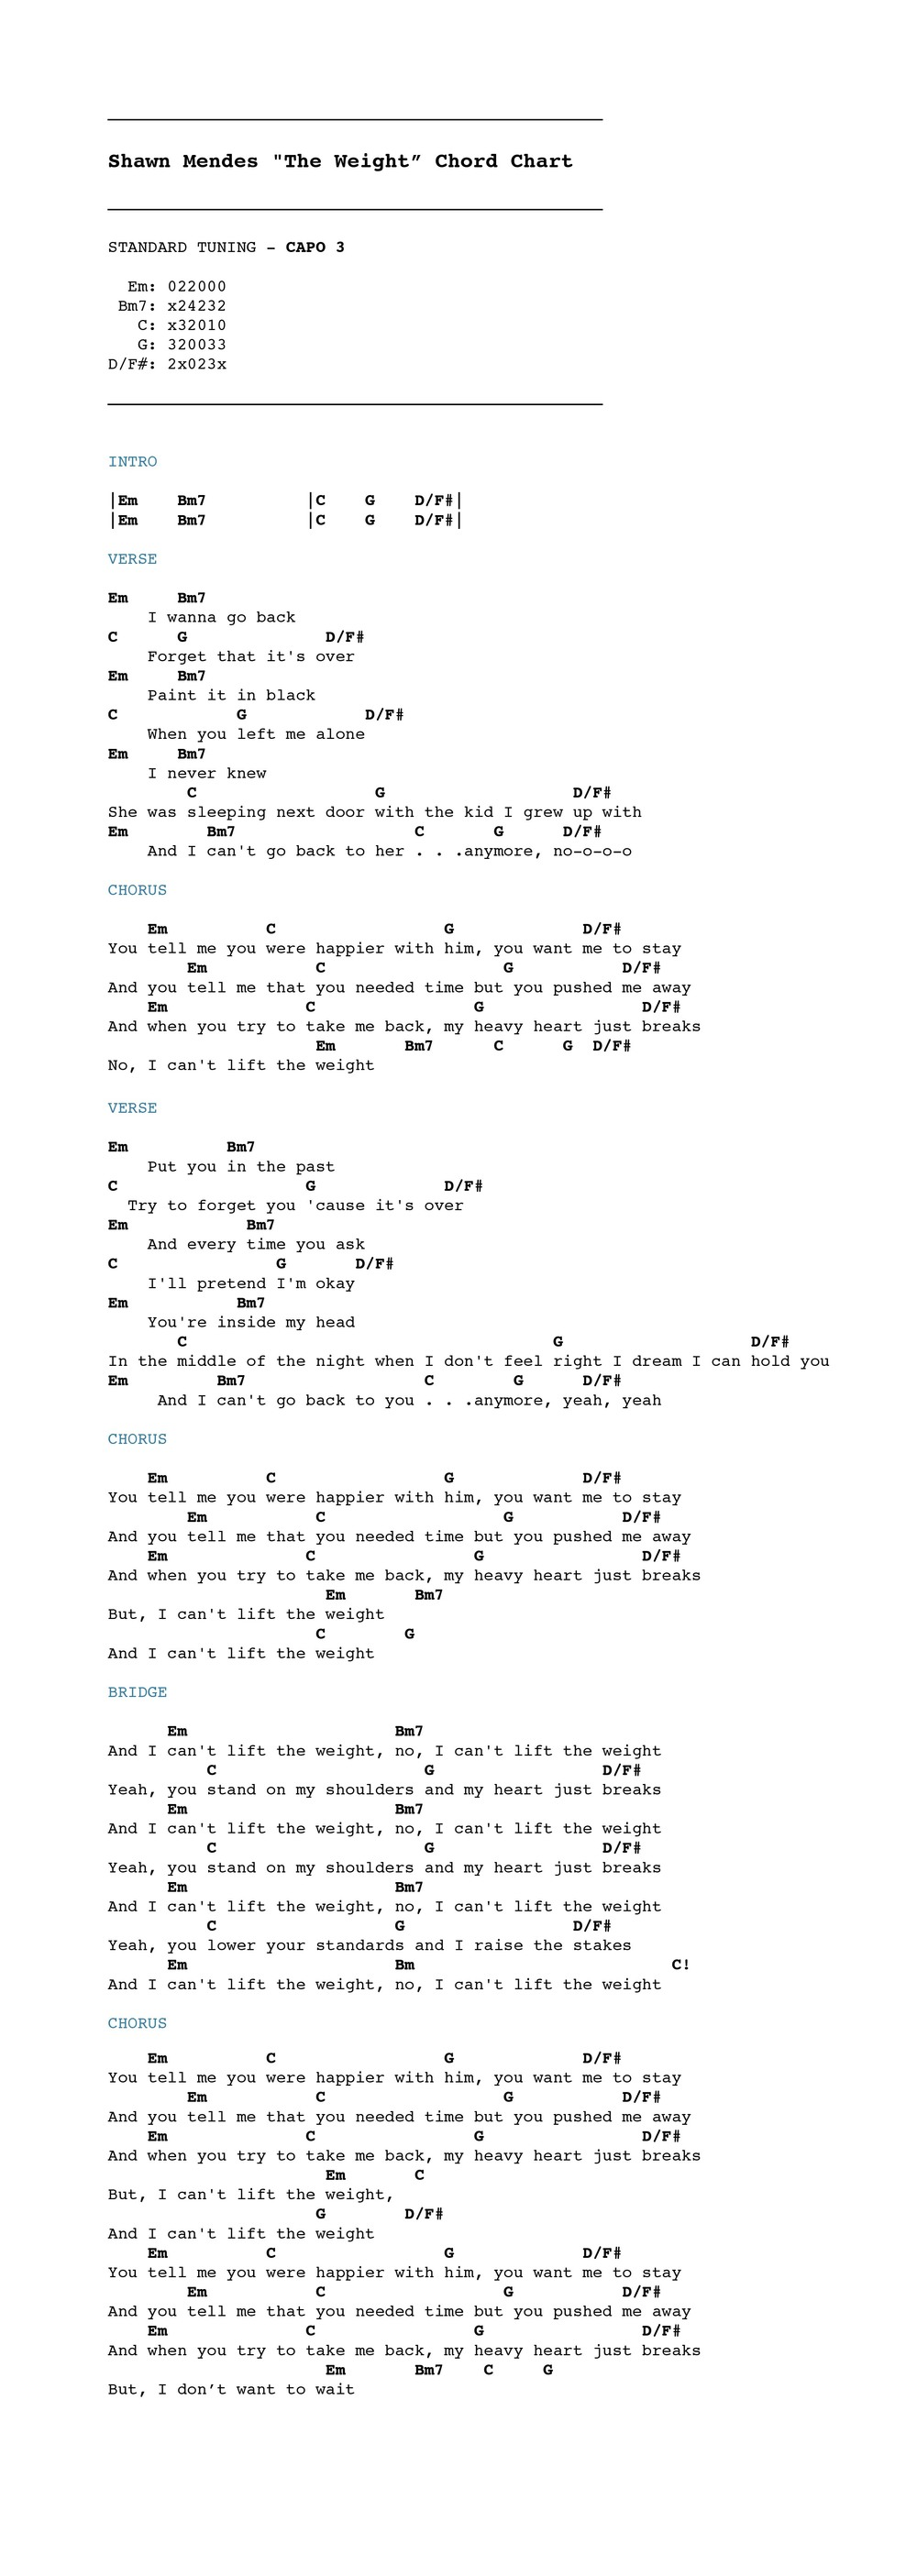 Shawn mendes the weight chordistry ill teach you all the other chords and strum patterns in the video too and you can use the chord chart below to sing and play along enjoy hexwebz Images